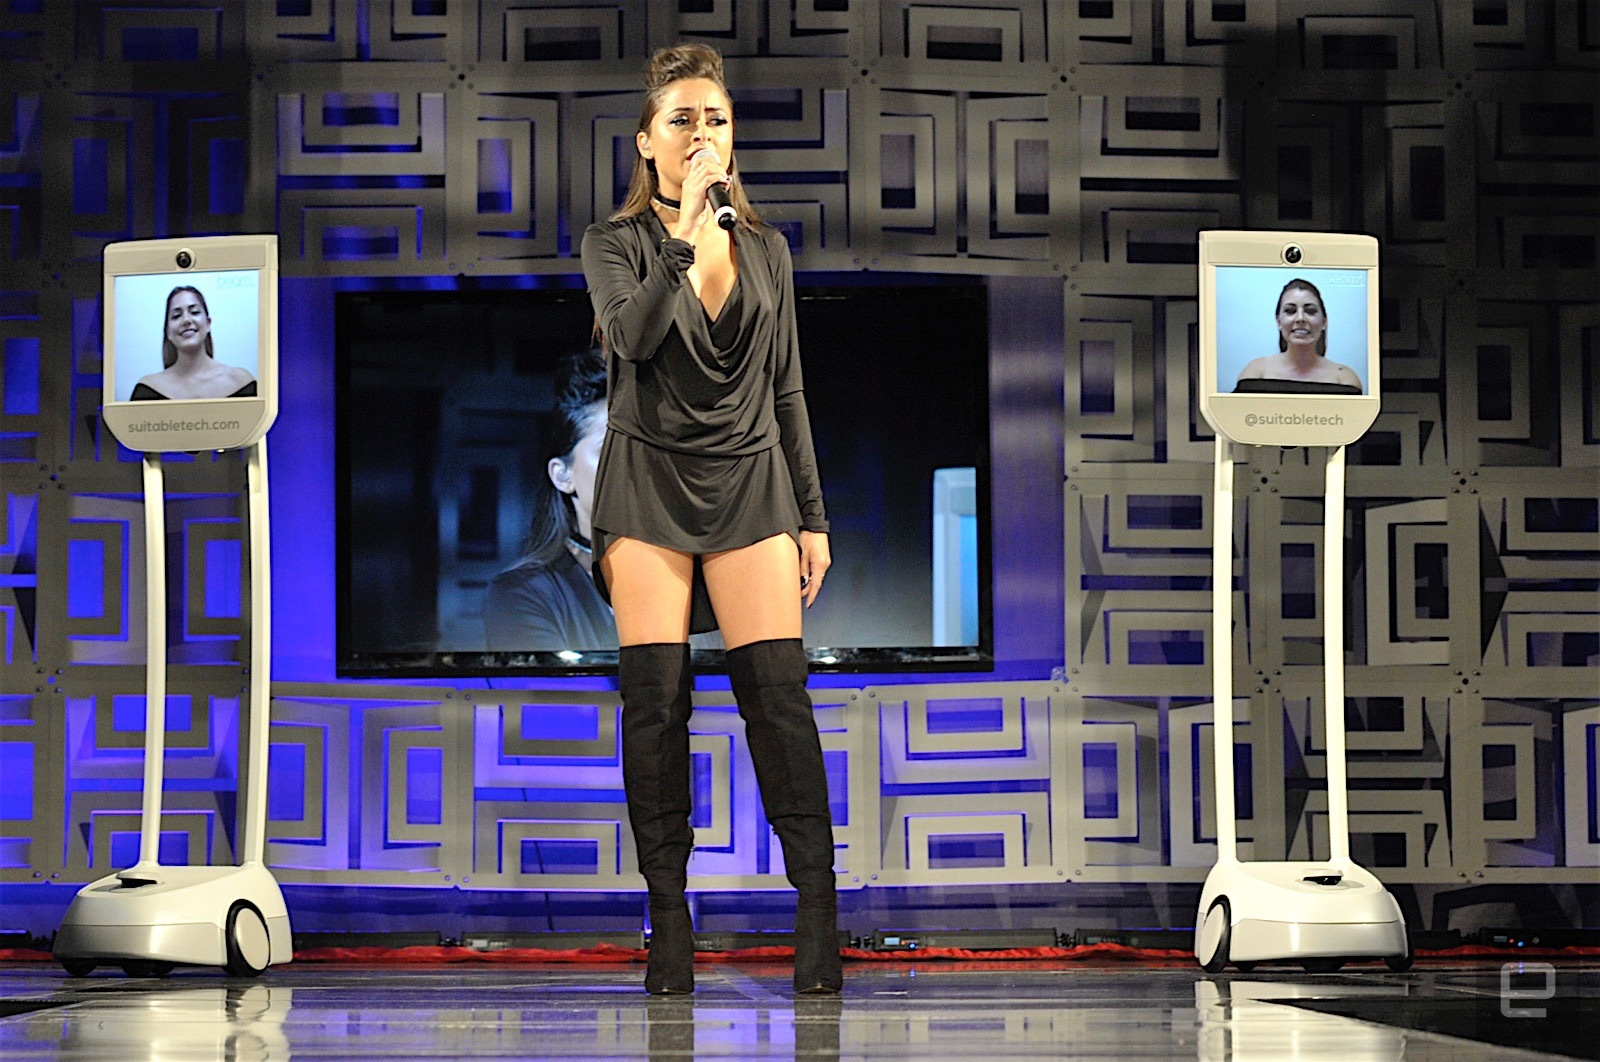 Singer Jasmin Cruz opened the second night with her hit single and backing vocals by two Beams telepresence robots from Suitable Technologies. Photo: Andrew Tarantola